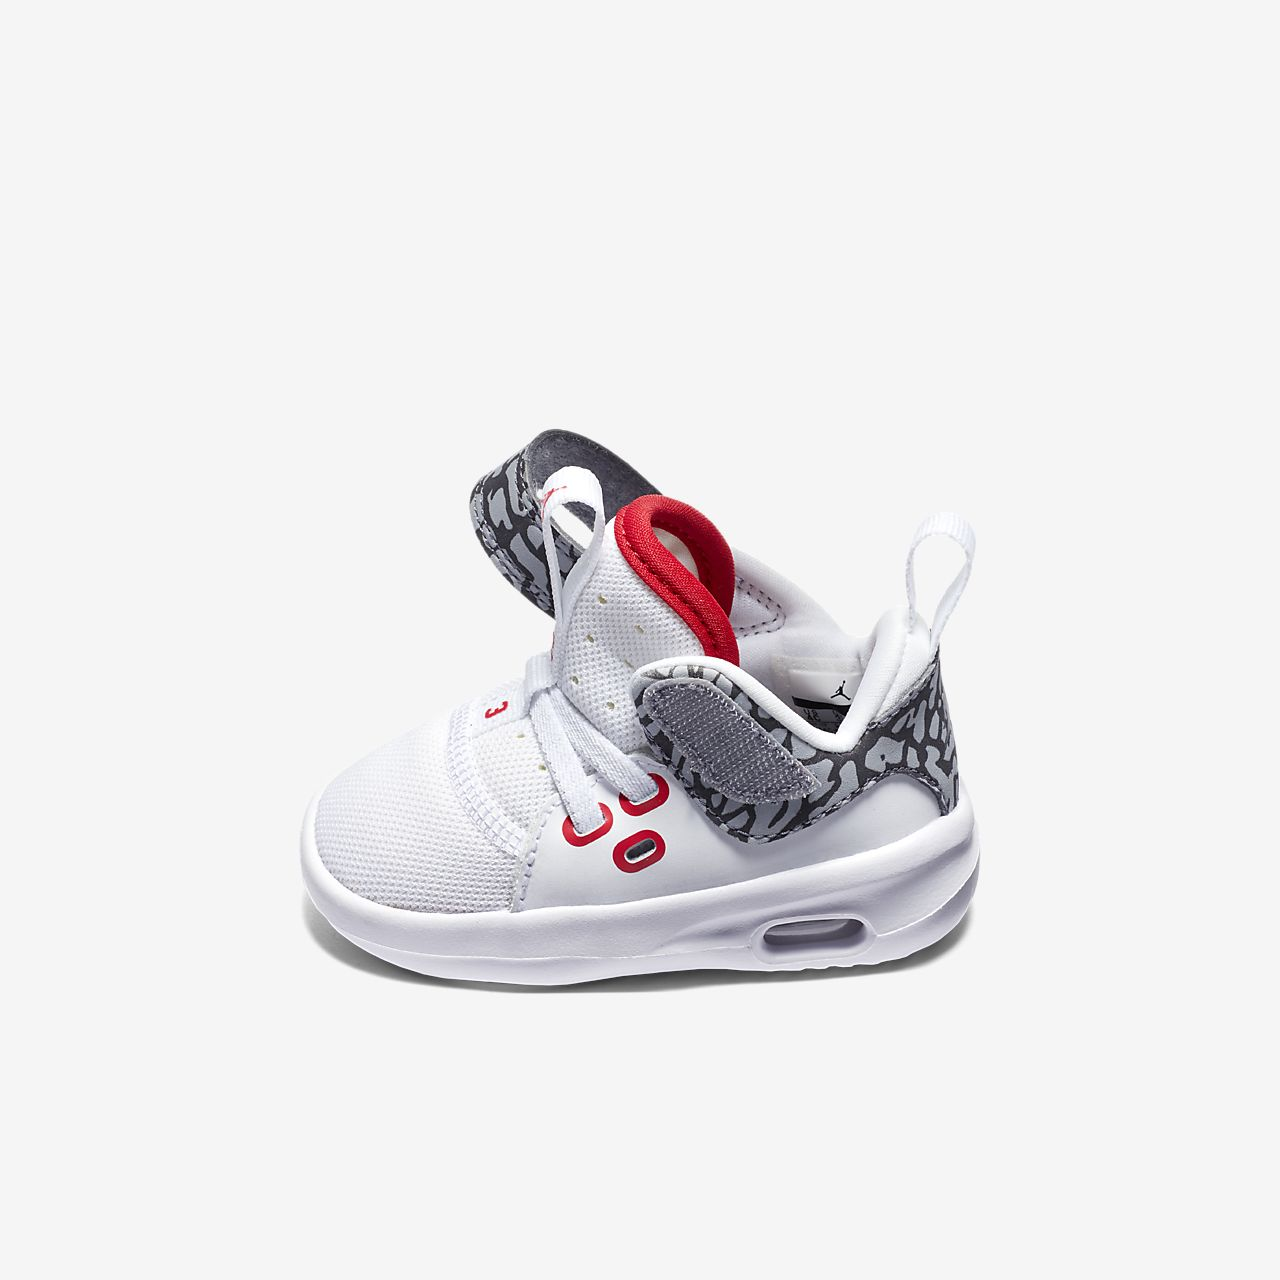 ... Air Jordan First Class Infant/Toddler Shoe